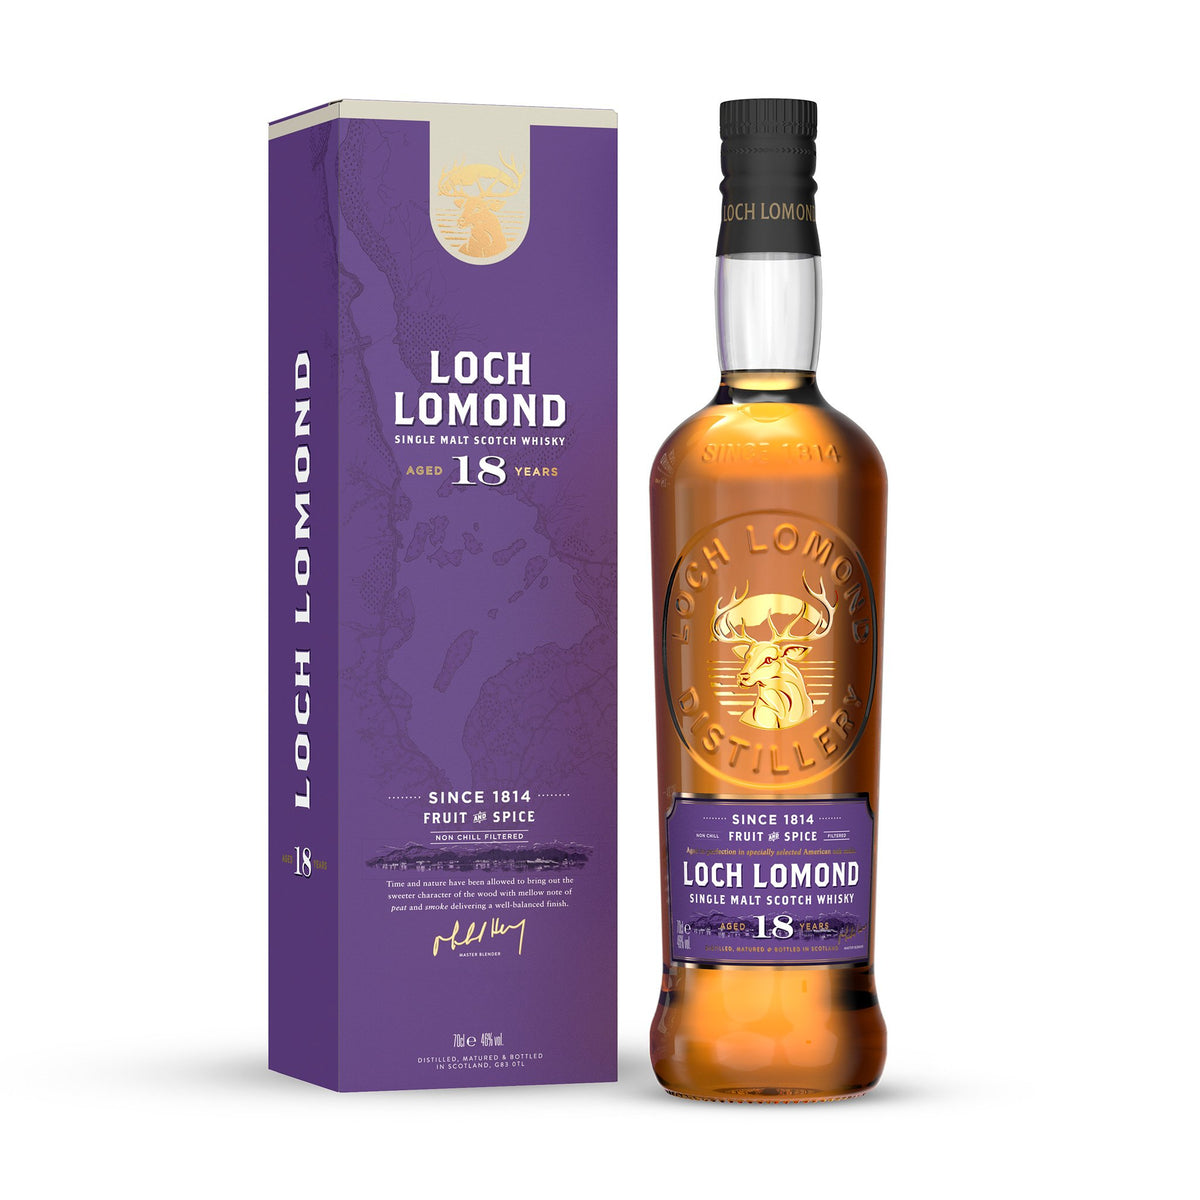 Loch Lomond 18 Year Old Single Malt Whisky with carton